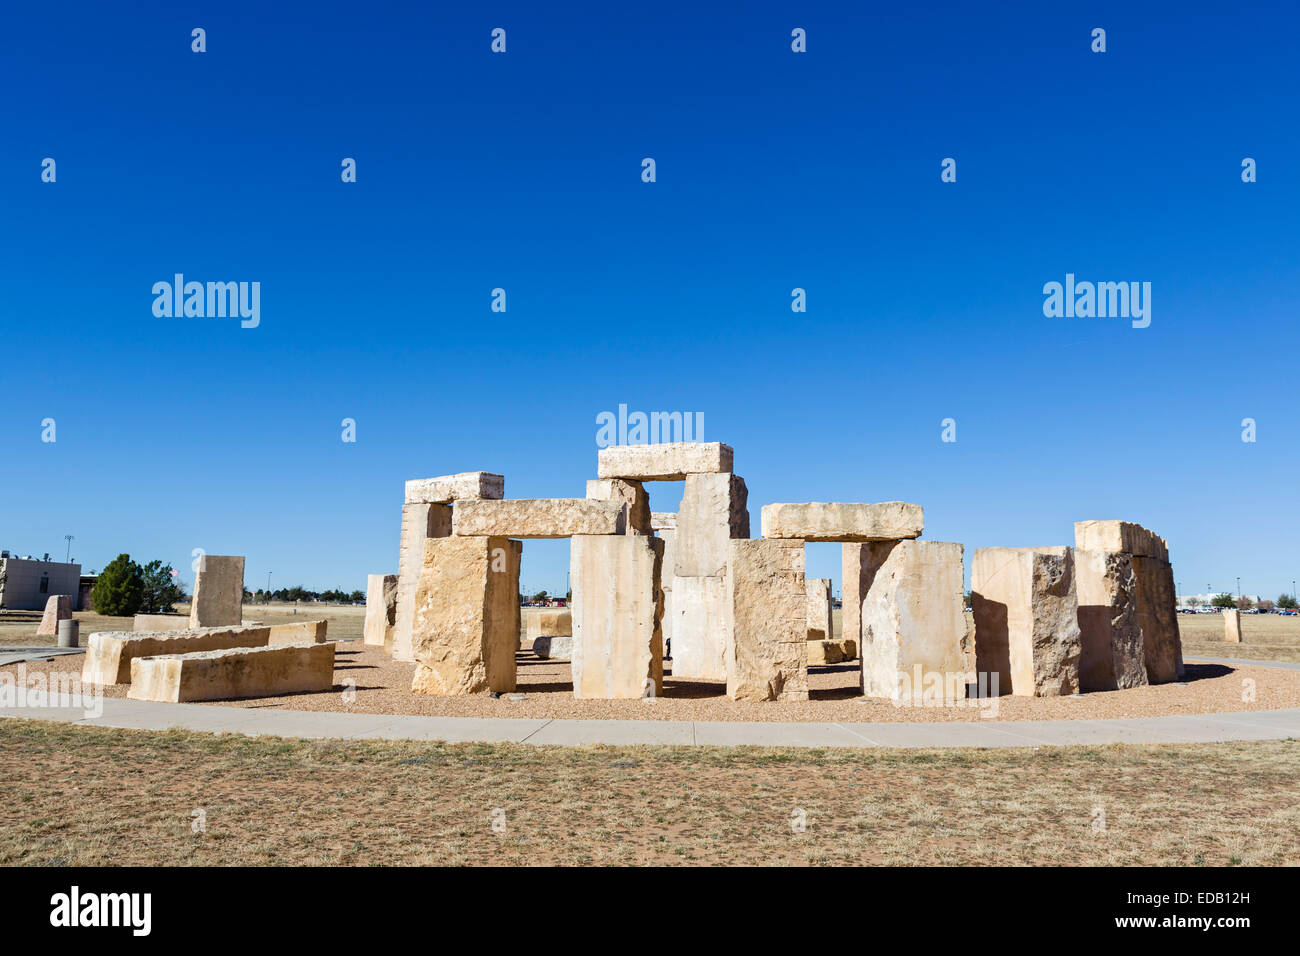 A replica of Stonehenge on the campus of the University of Texas of the Permian Basin, Odessa, Texas, USA - Stock Image